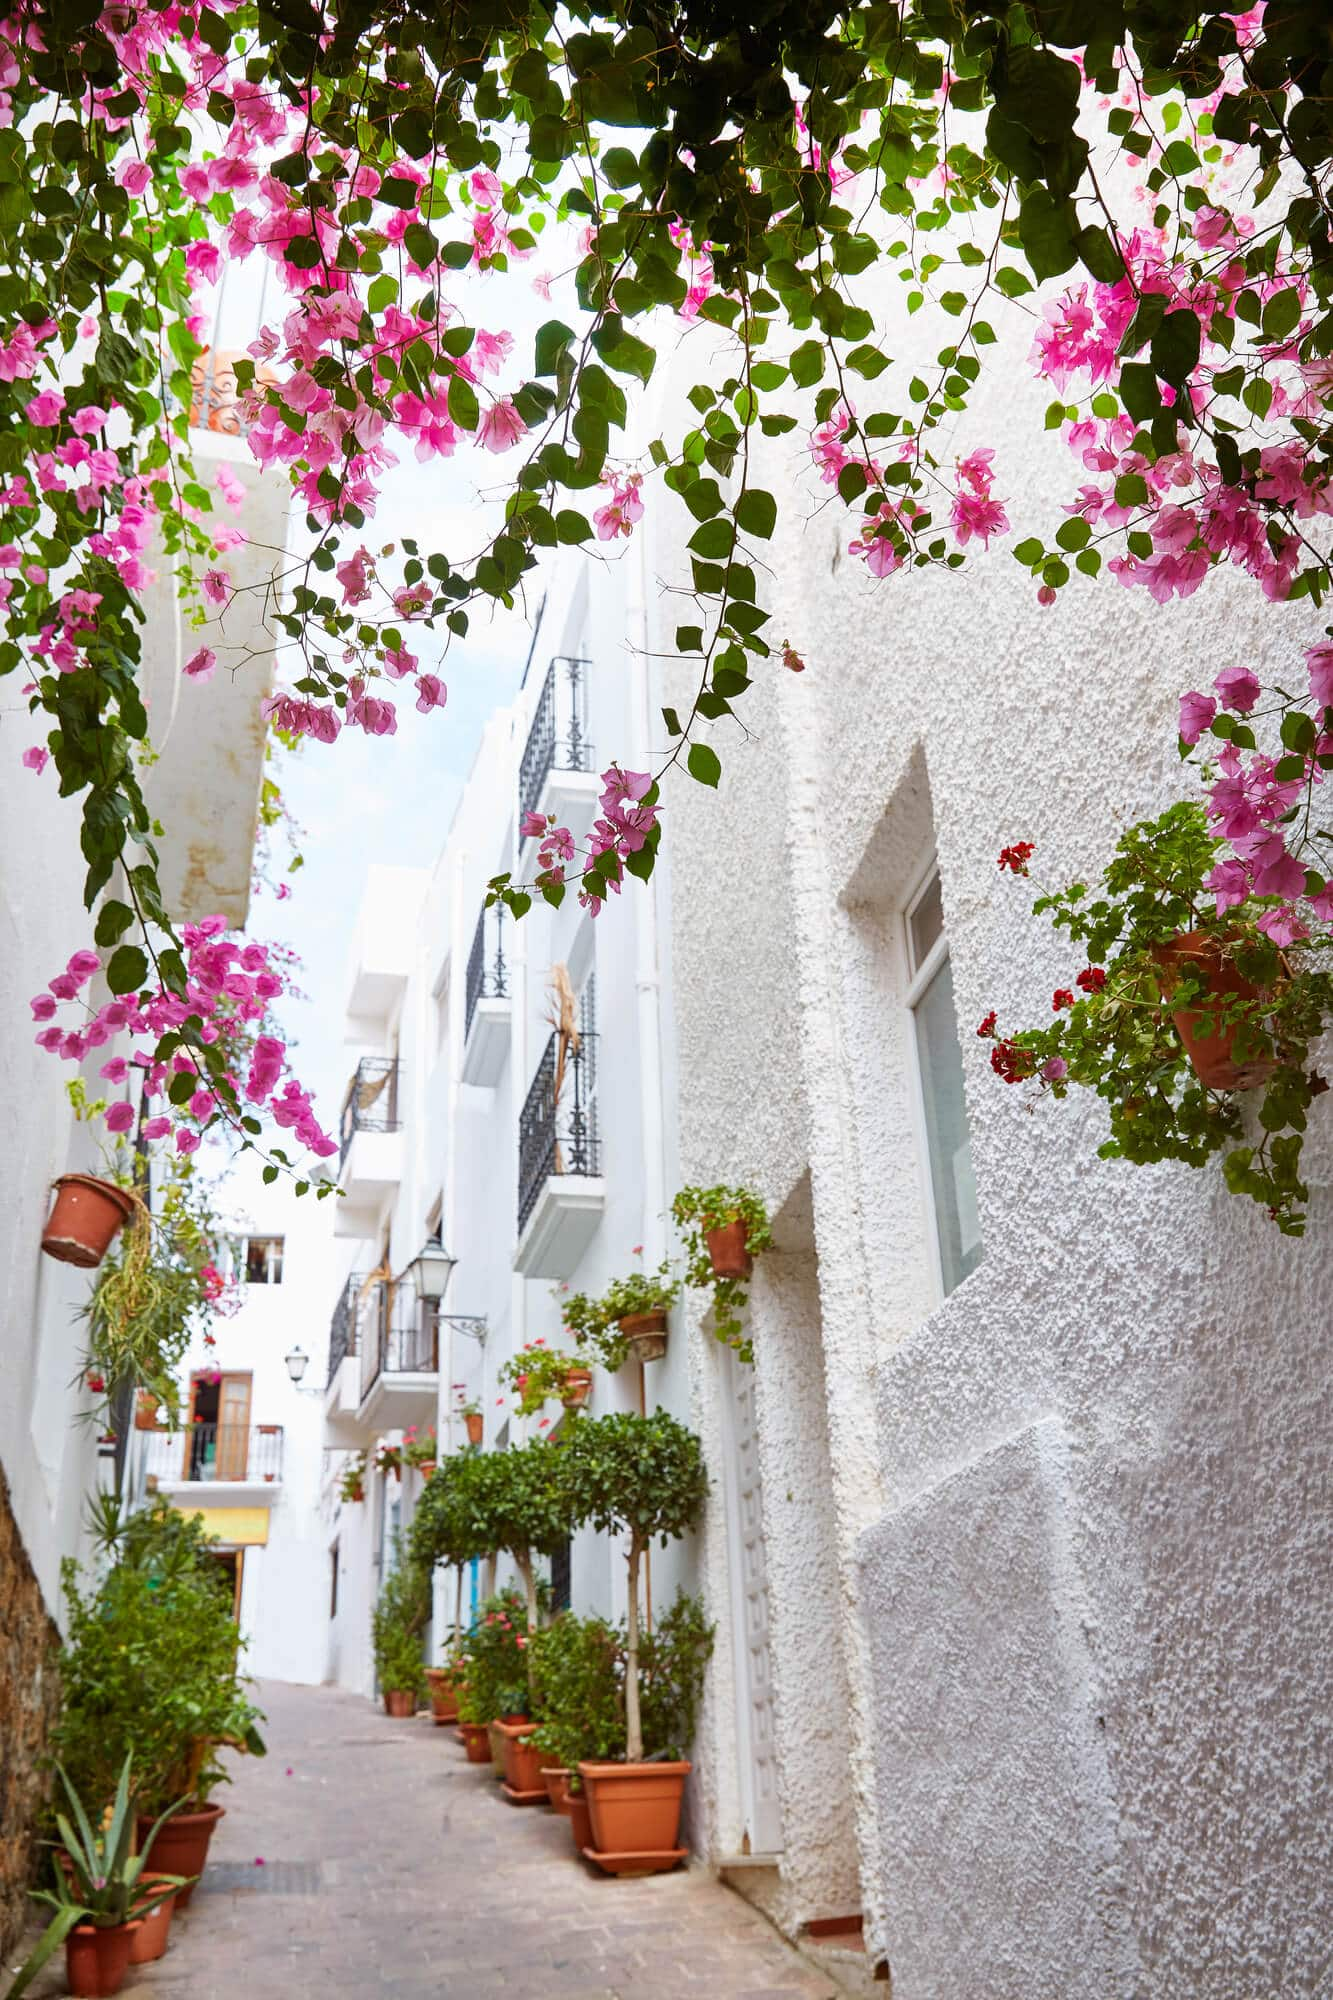 View of a narrow alley between white houses covered in Bougainvillea in Mojácar Pueblo in Almeria - One of Spain's most beautiful white villages